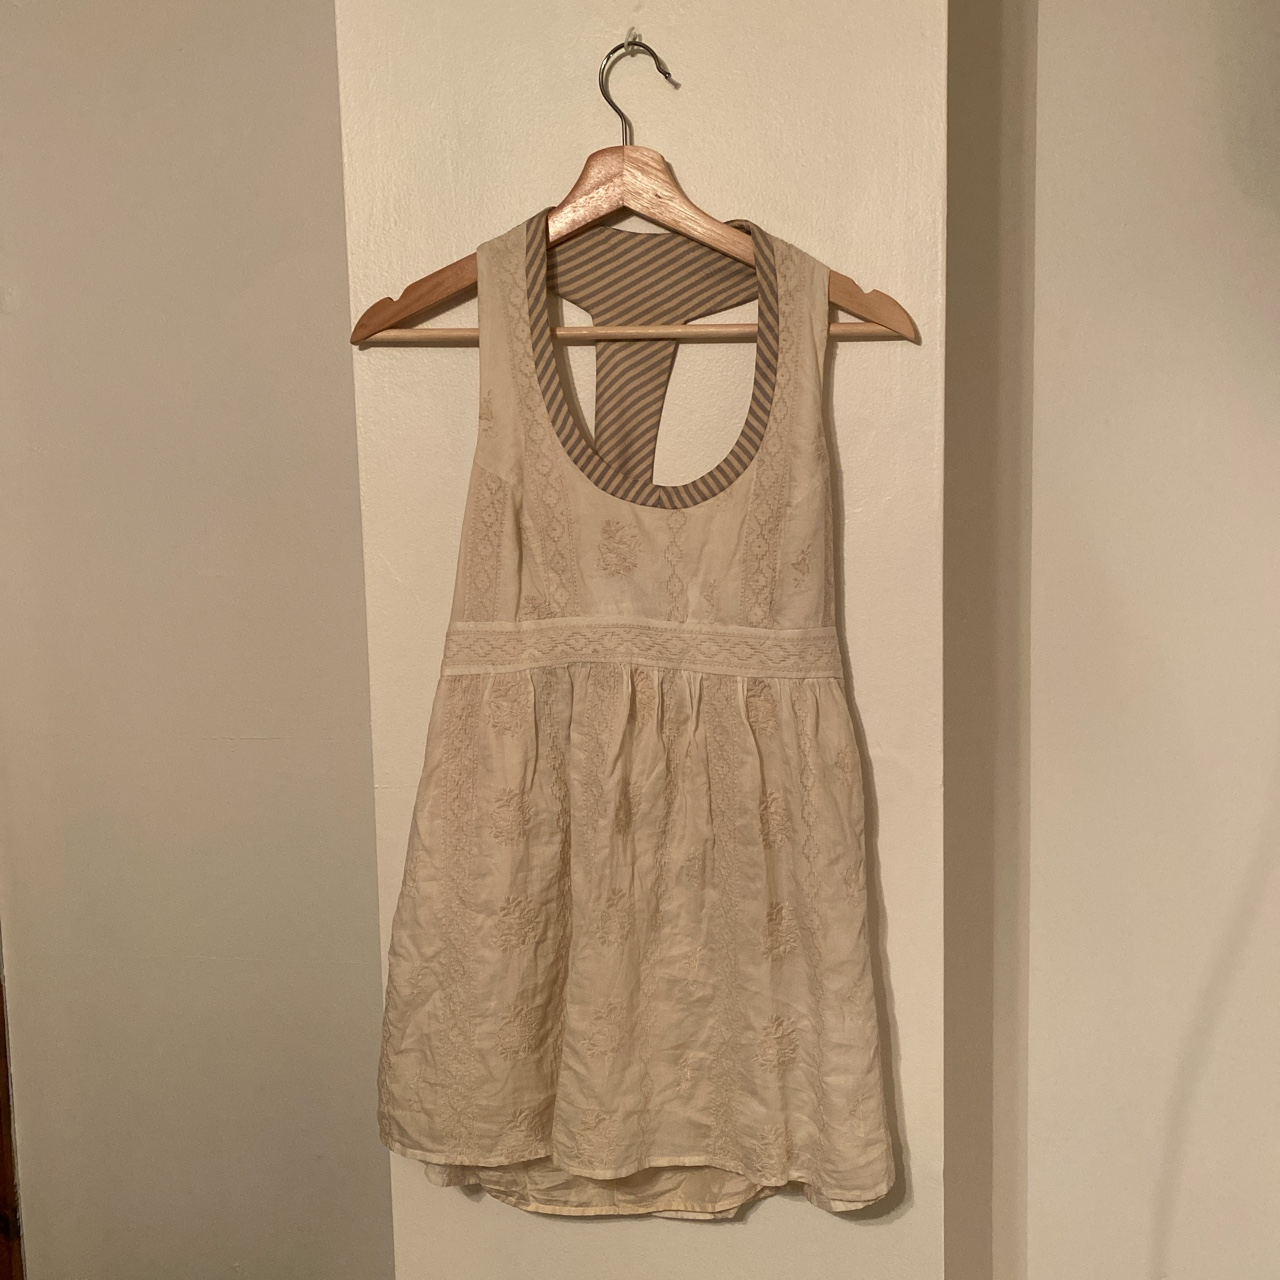 Product Image 1 - Vintage embroidered tank